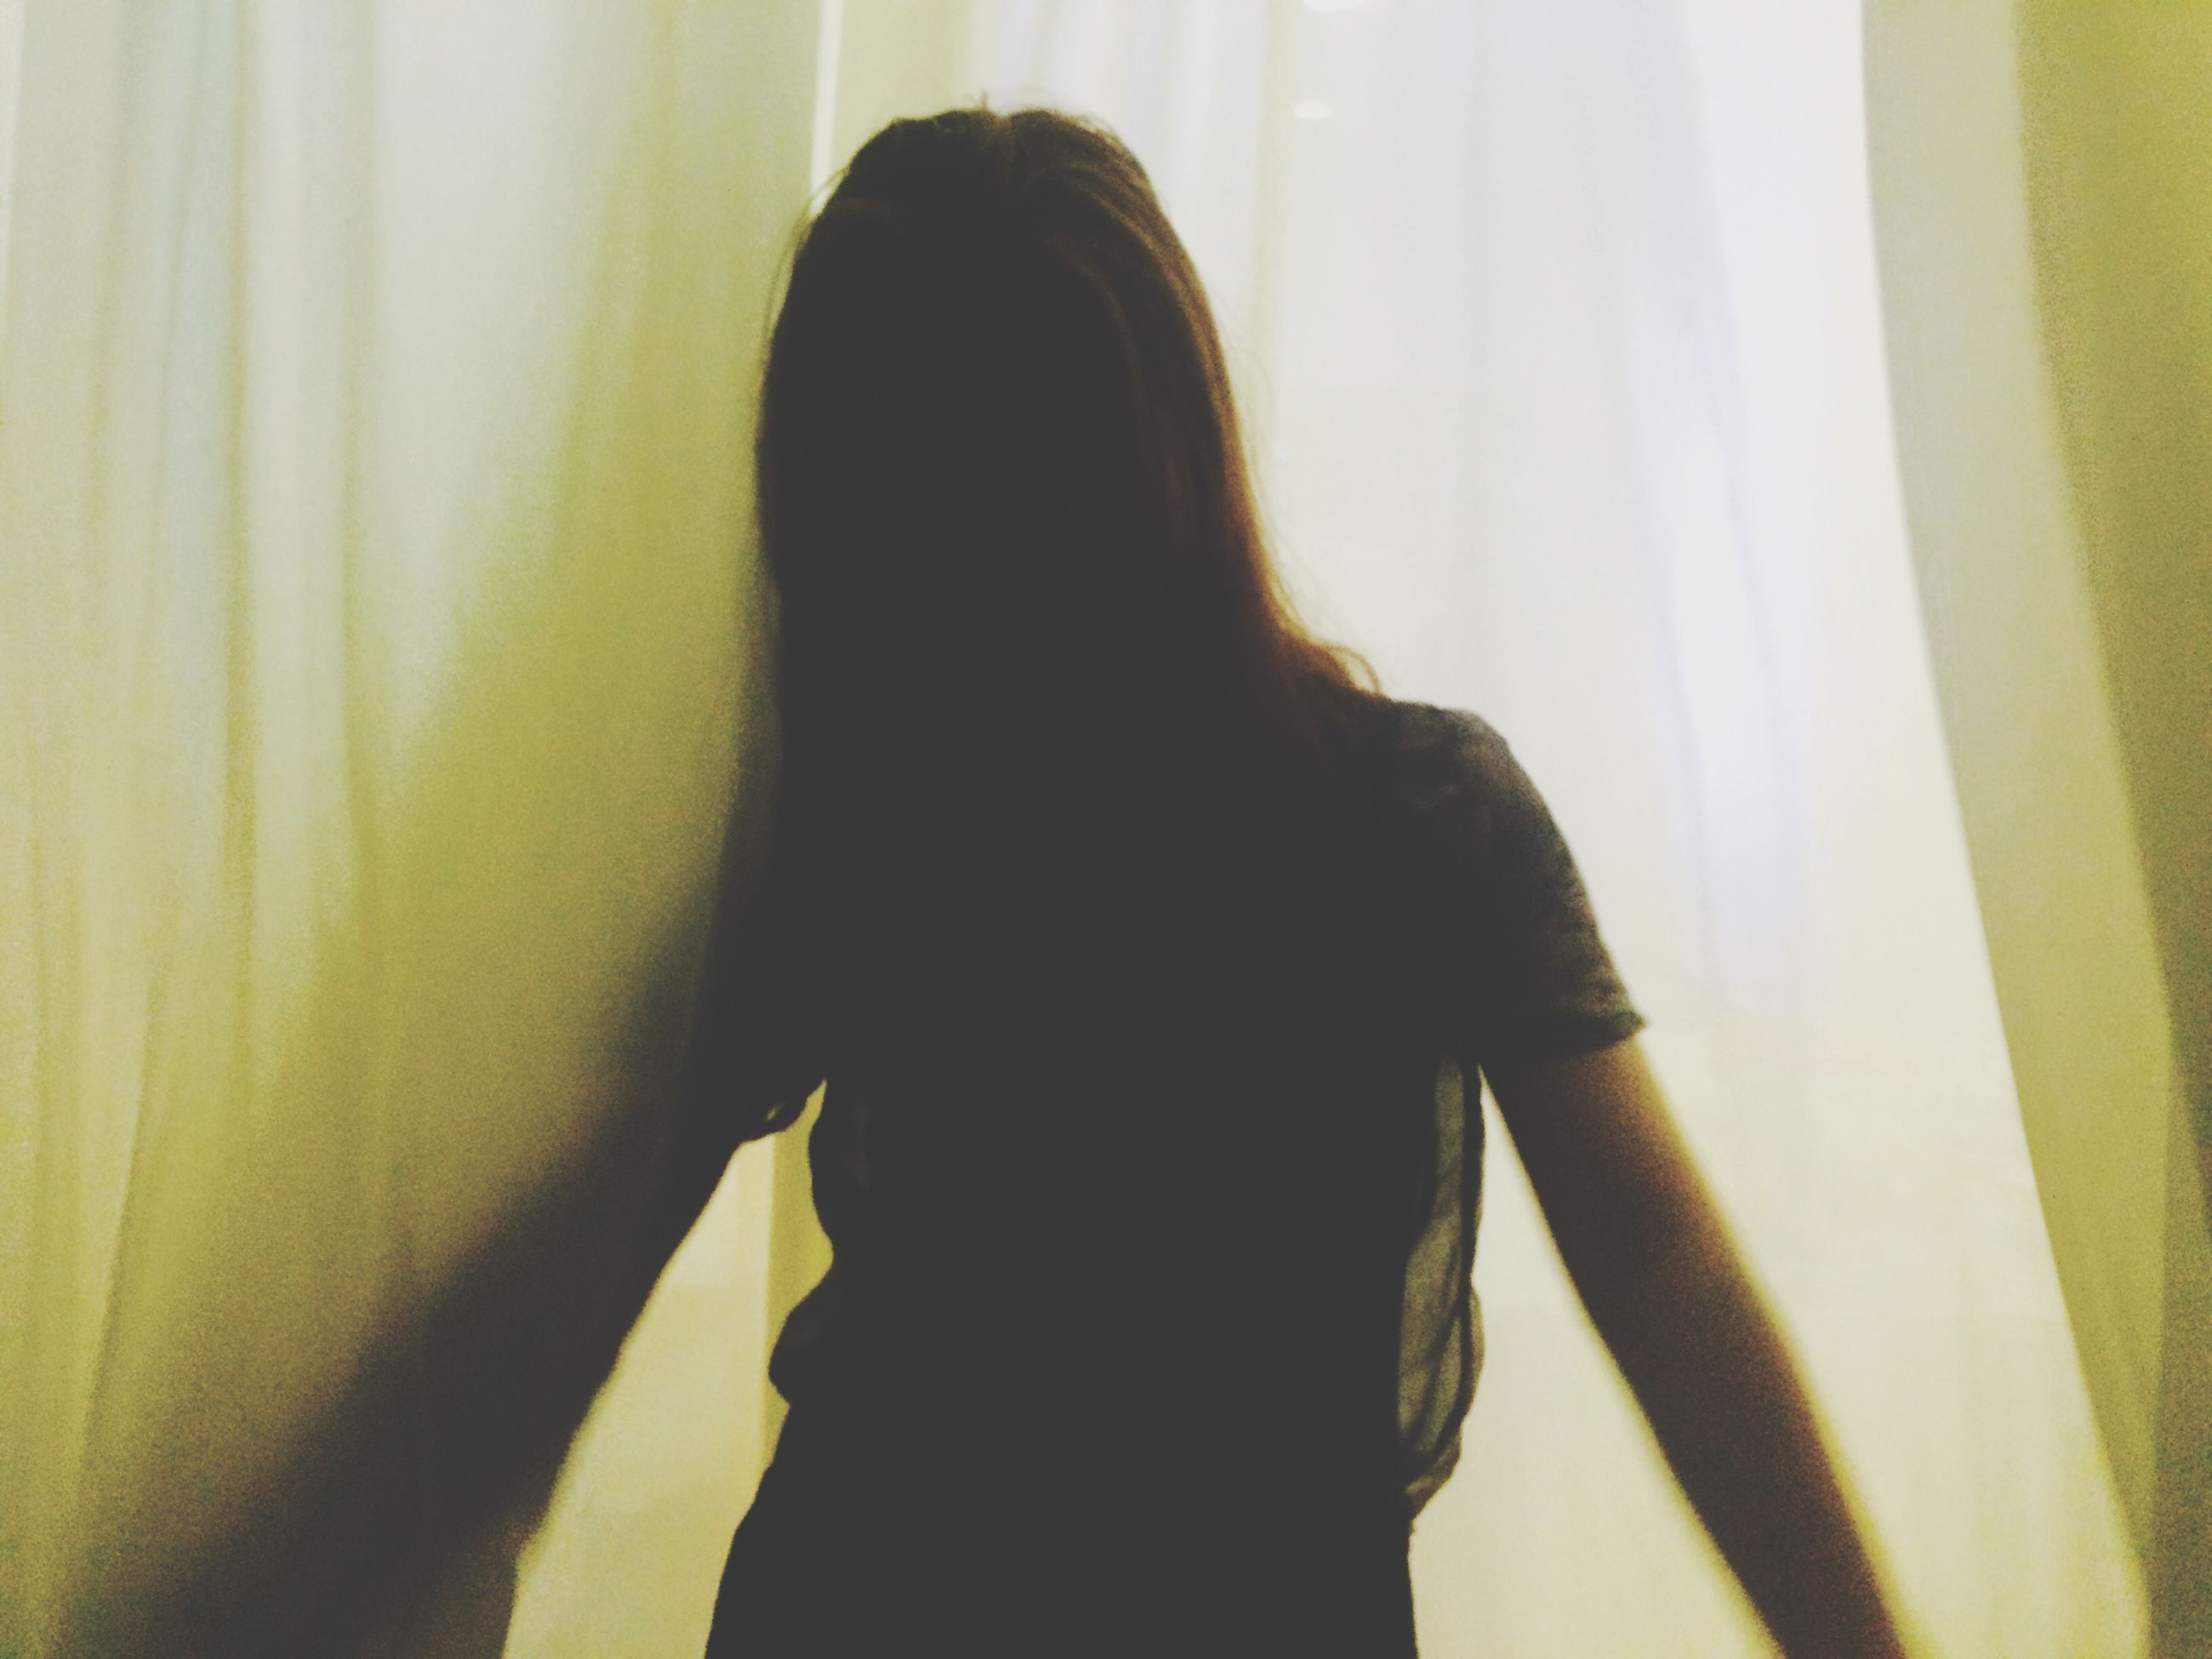 indoors, long hair, lifestyles, young women, young adult, curtain, headshot, leisure activity, person, window, home interior, rear view, standing, contemplation, waist up, wall - building feature, sunlight, casual clothing